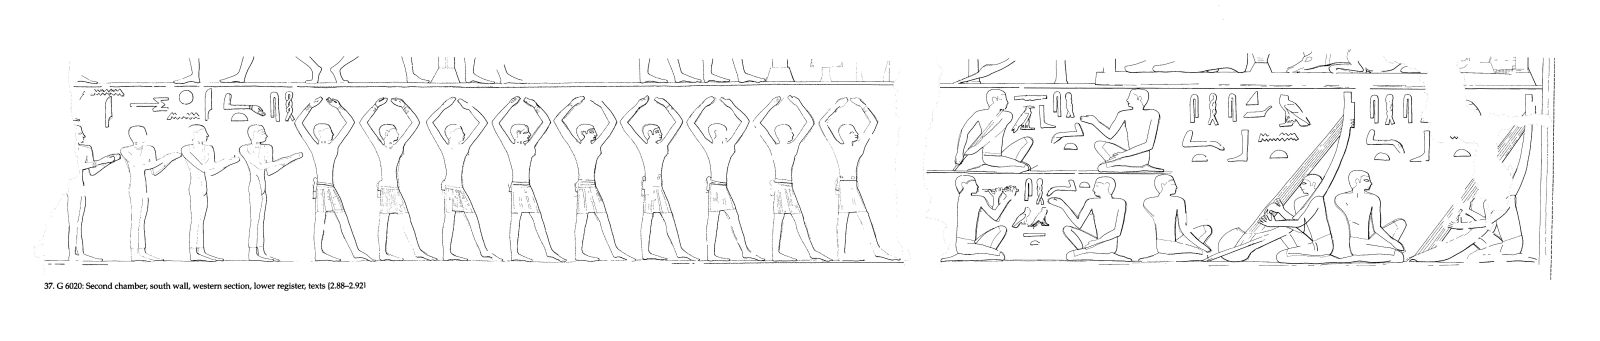 Drawings: G 6020: relief from second chamber, S wall, W section, lower register